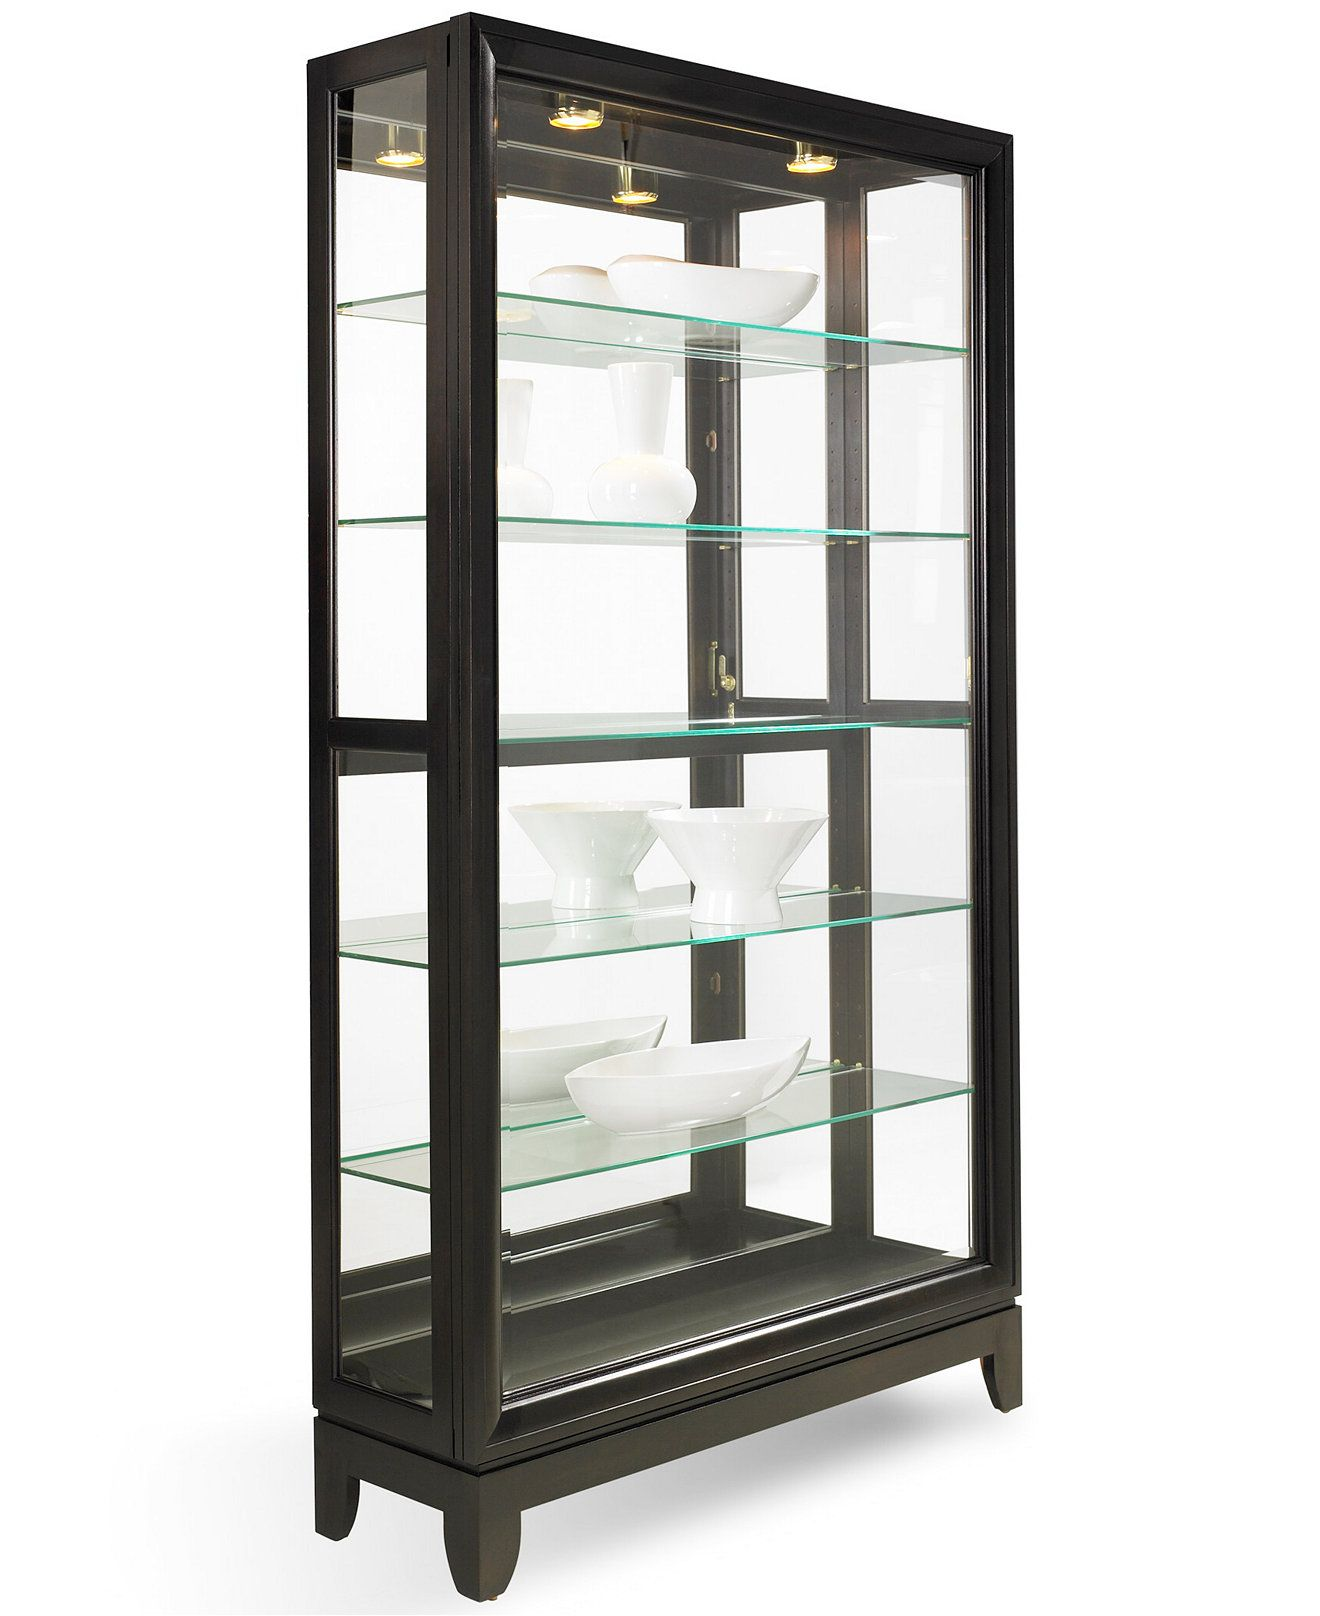 Contemporary Curio Cabinets Drake Dual-slide Contemporary Curio Cabinet | Home